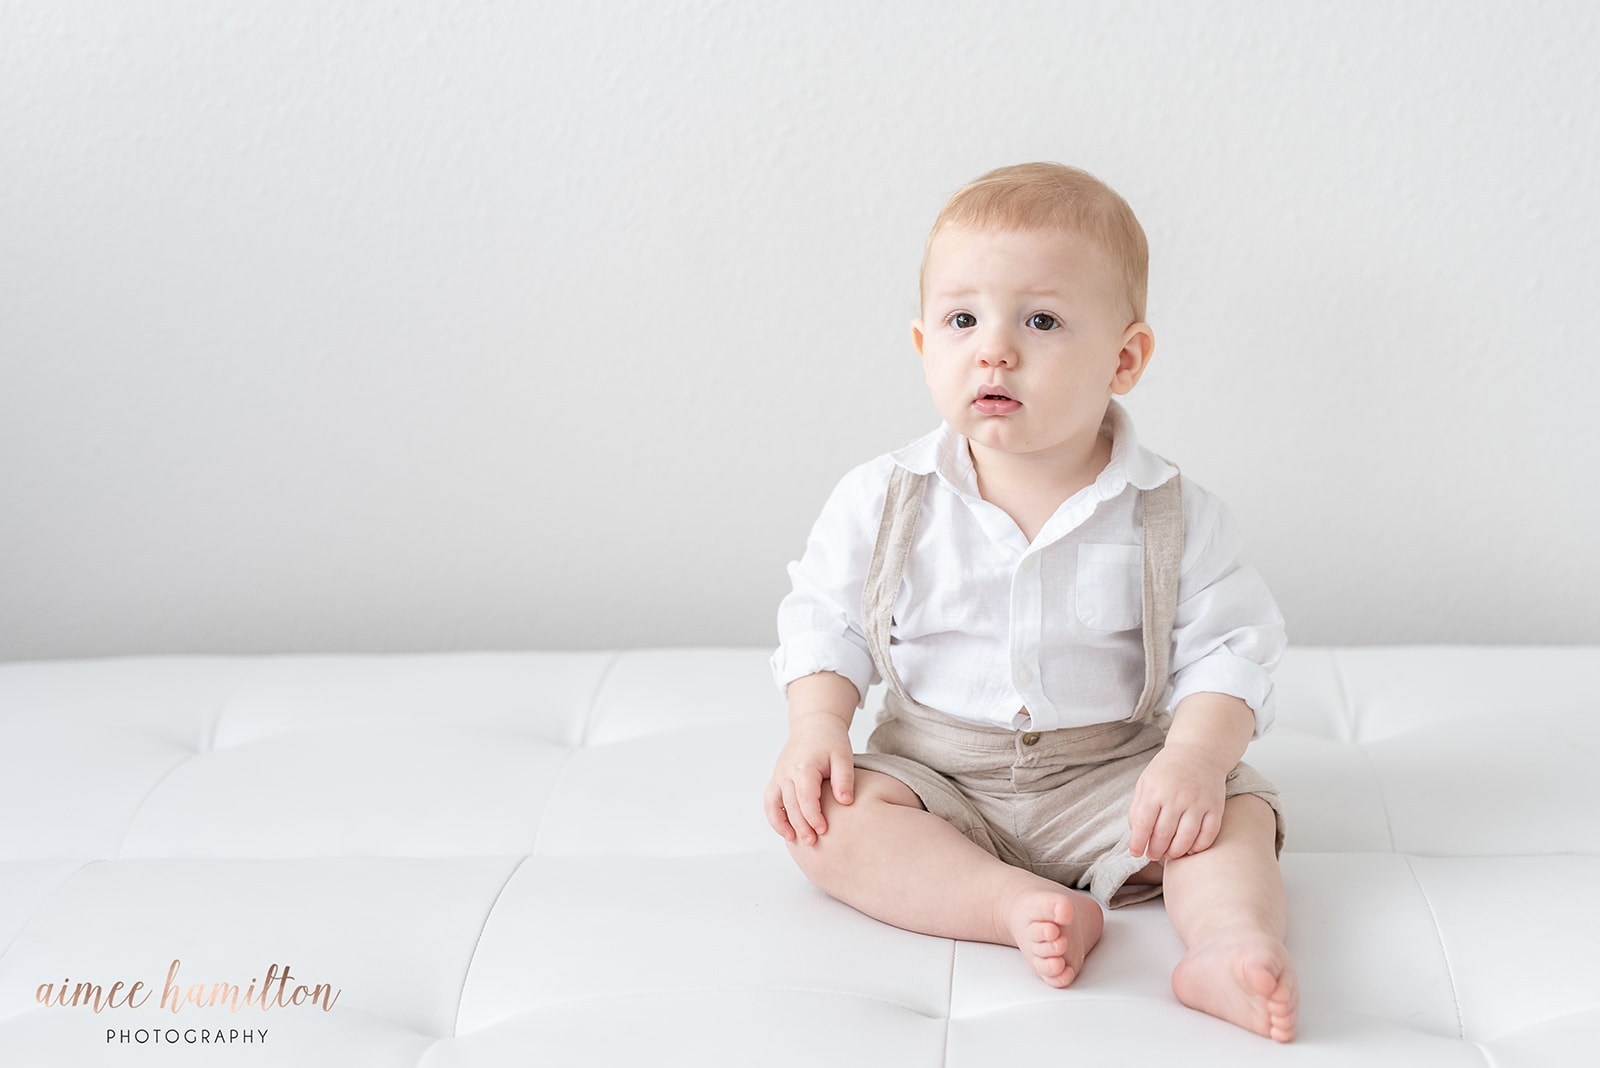 picture of baby boy in suspenders